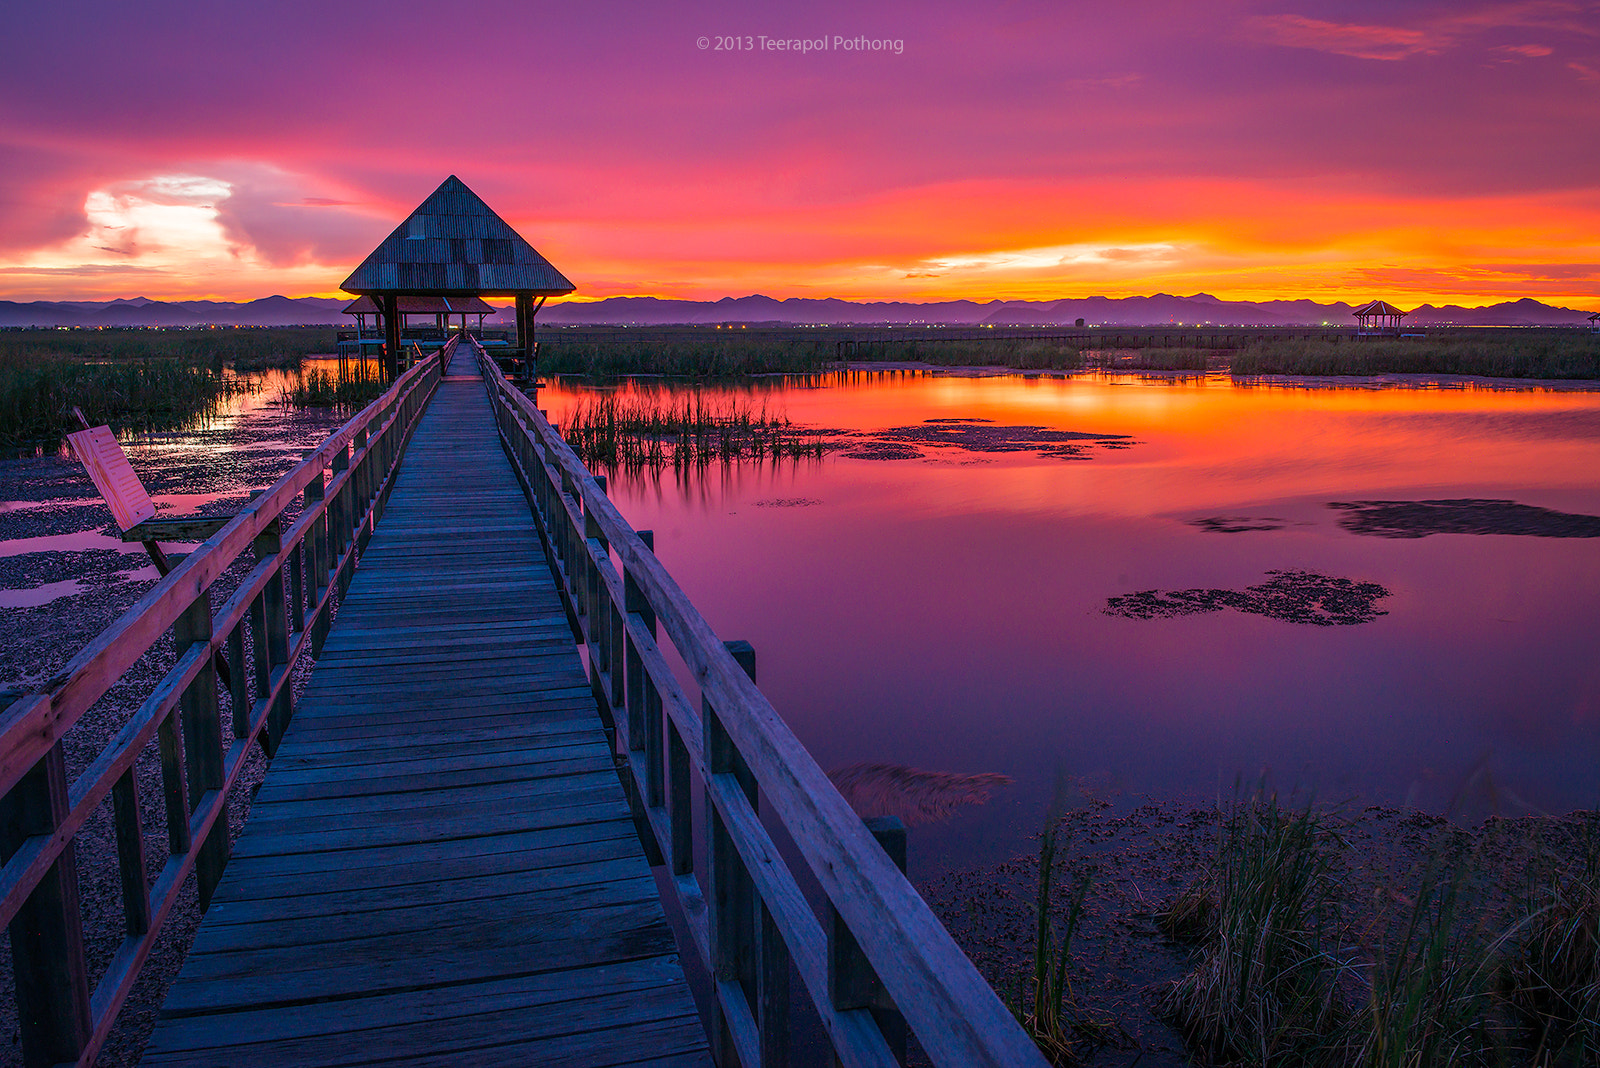 Photograph Bungbua 300 Yod in Sunset by Teerapol Pothong on 500px